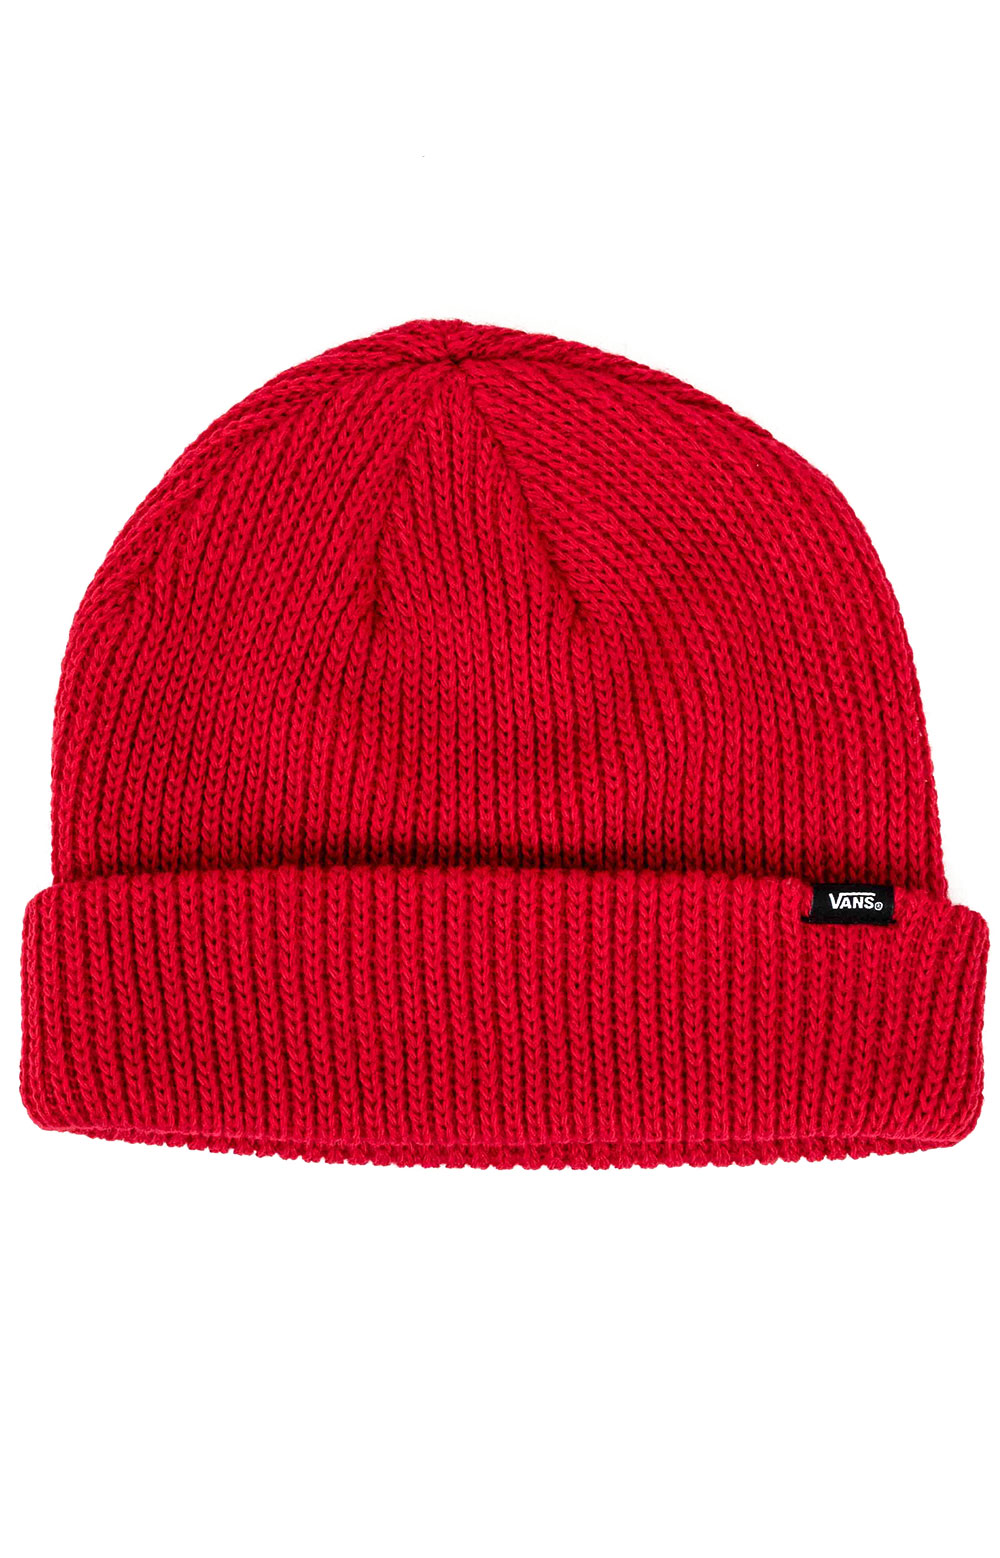 Core Basic Beanie - Chili Pepper